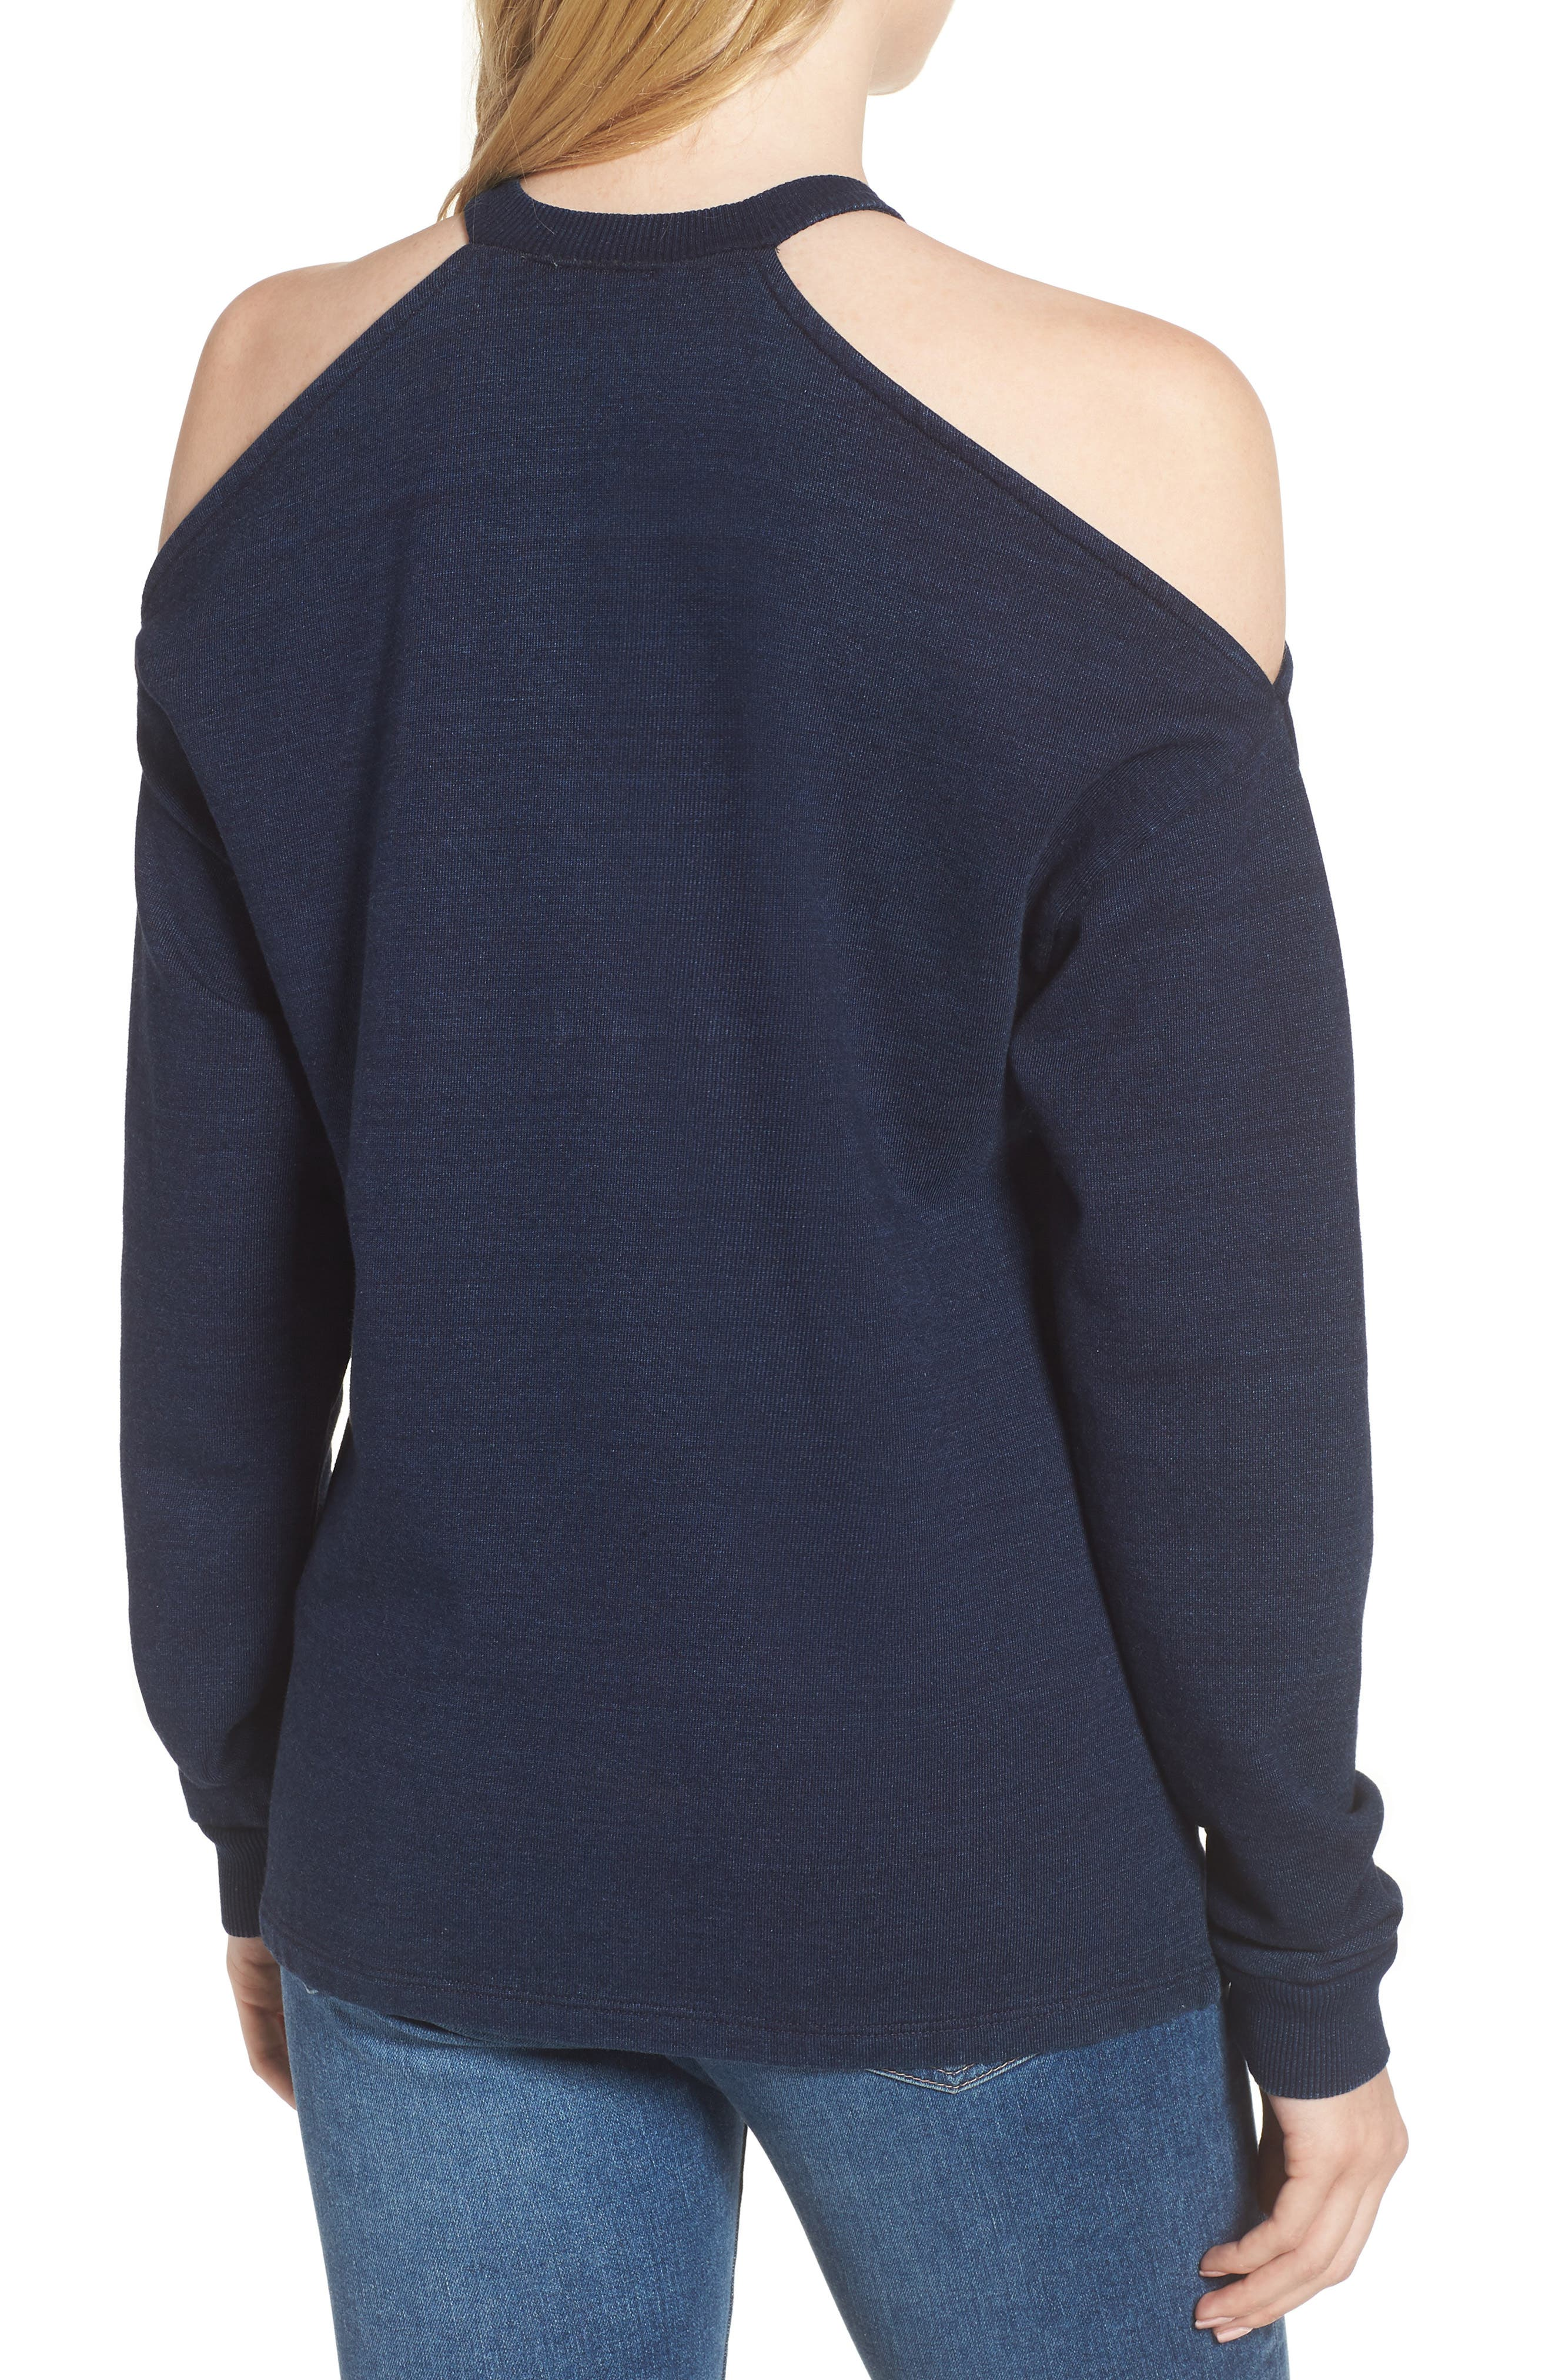 Gizi Cold Shoulder Sweatshirt,                             Alternate thumbnail 2, color,                             Blue River